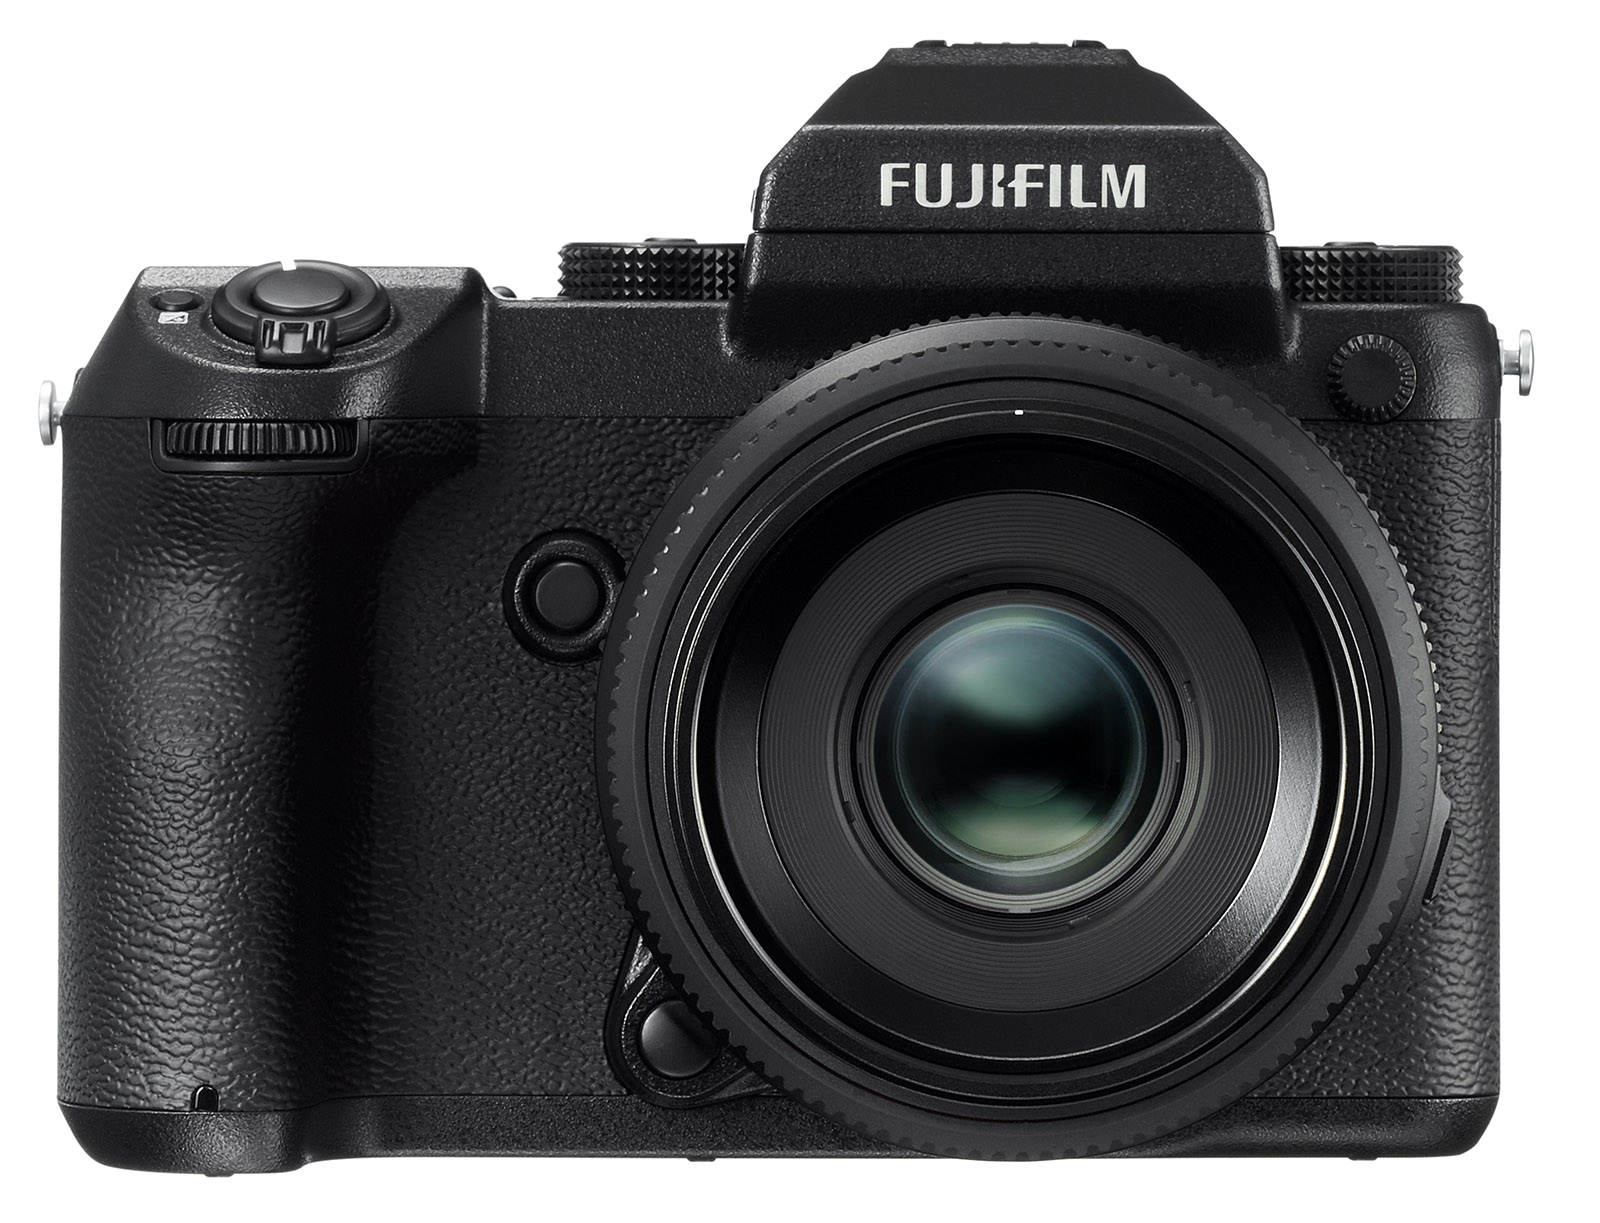 The new Fujifilm GFX 50S Medium Format mirrorless camera